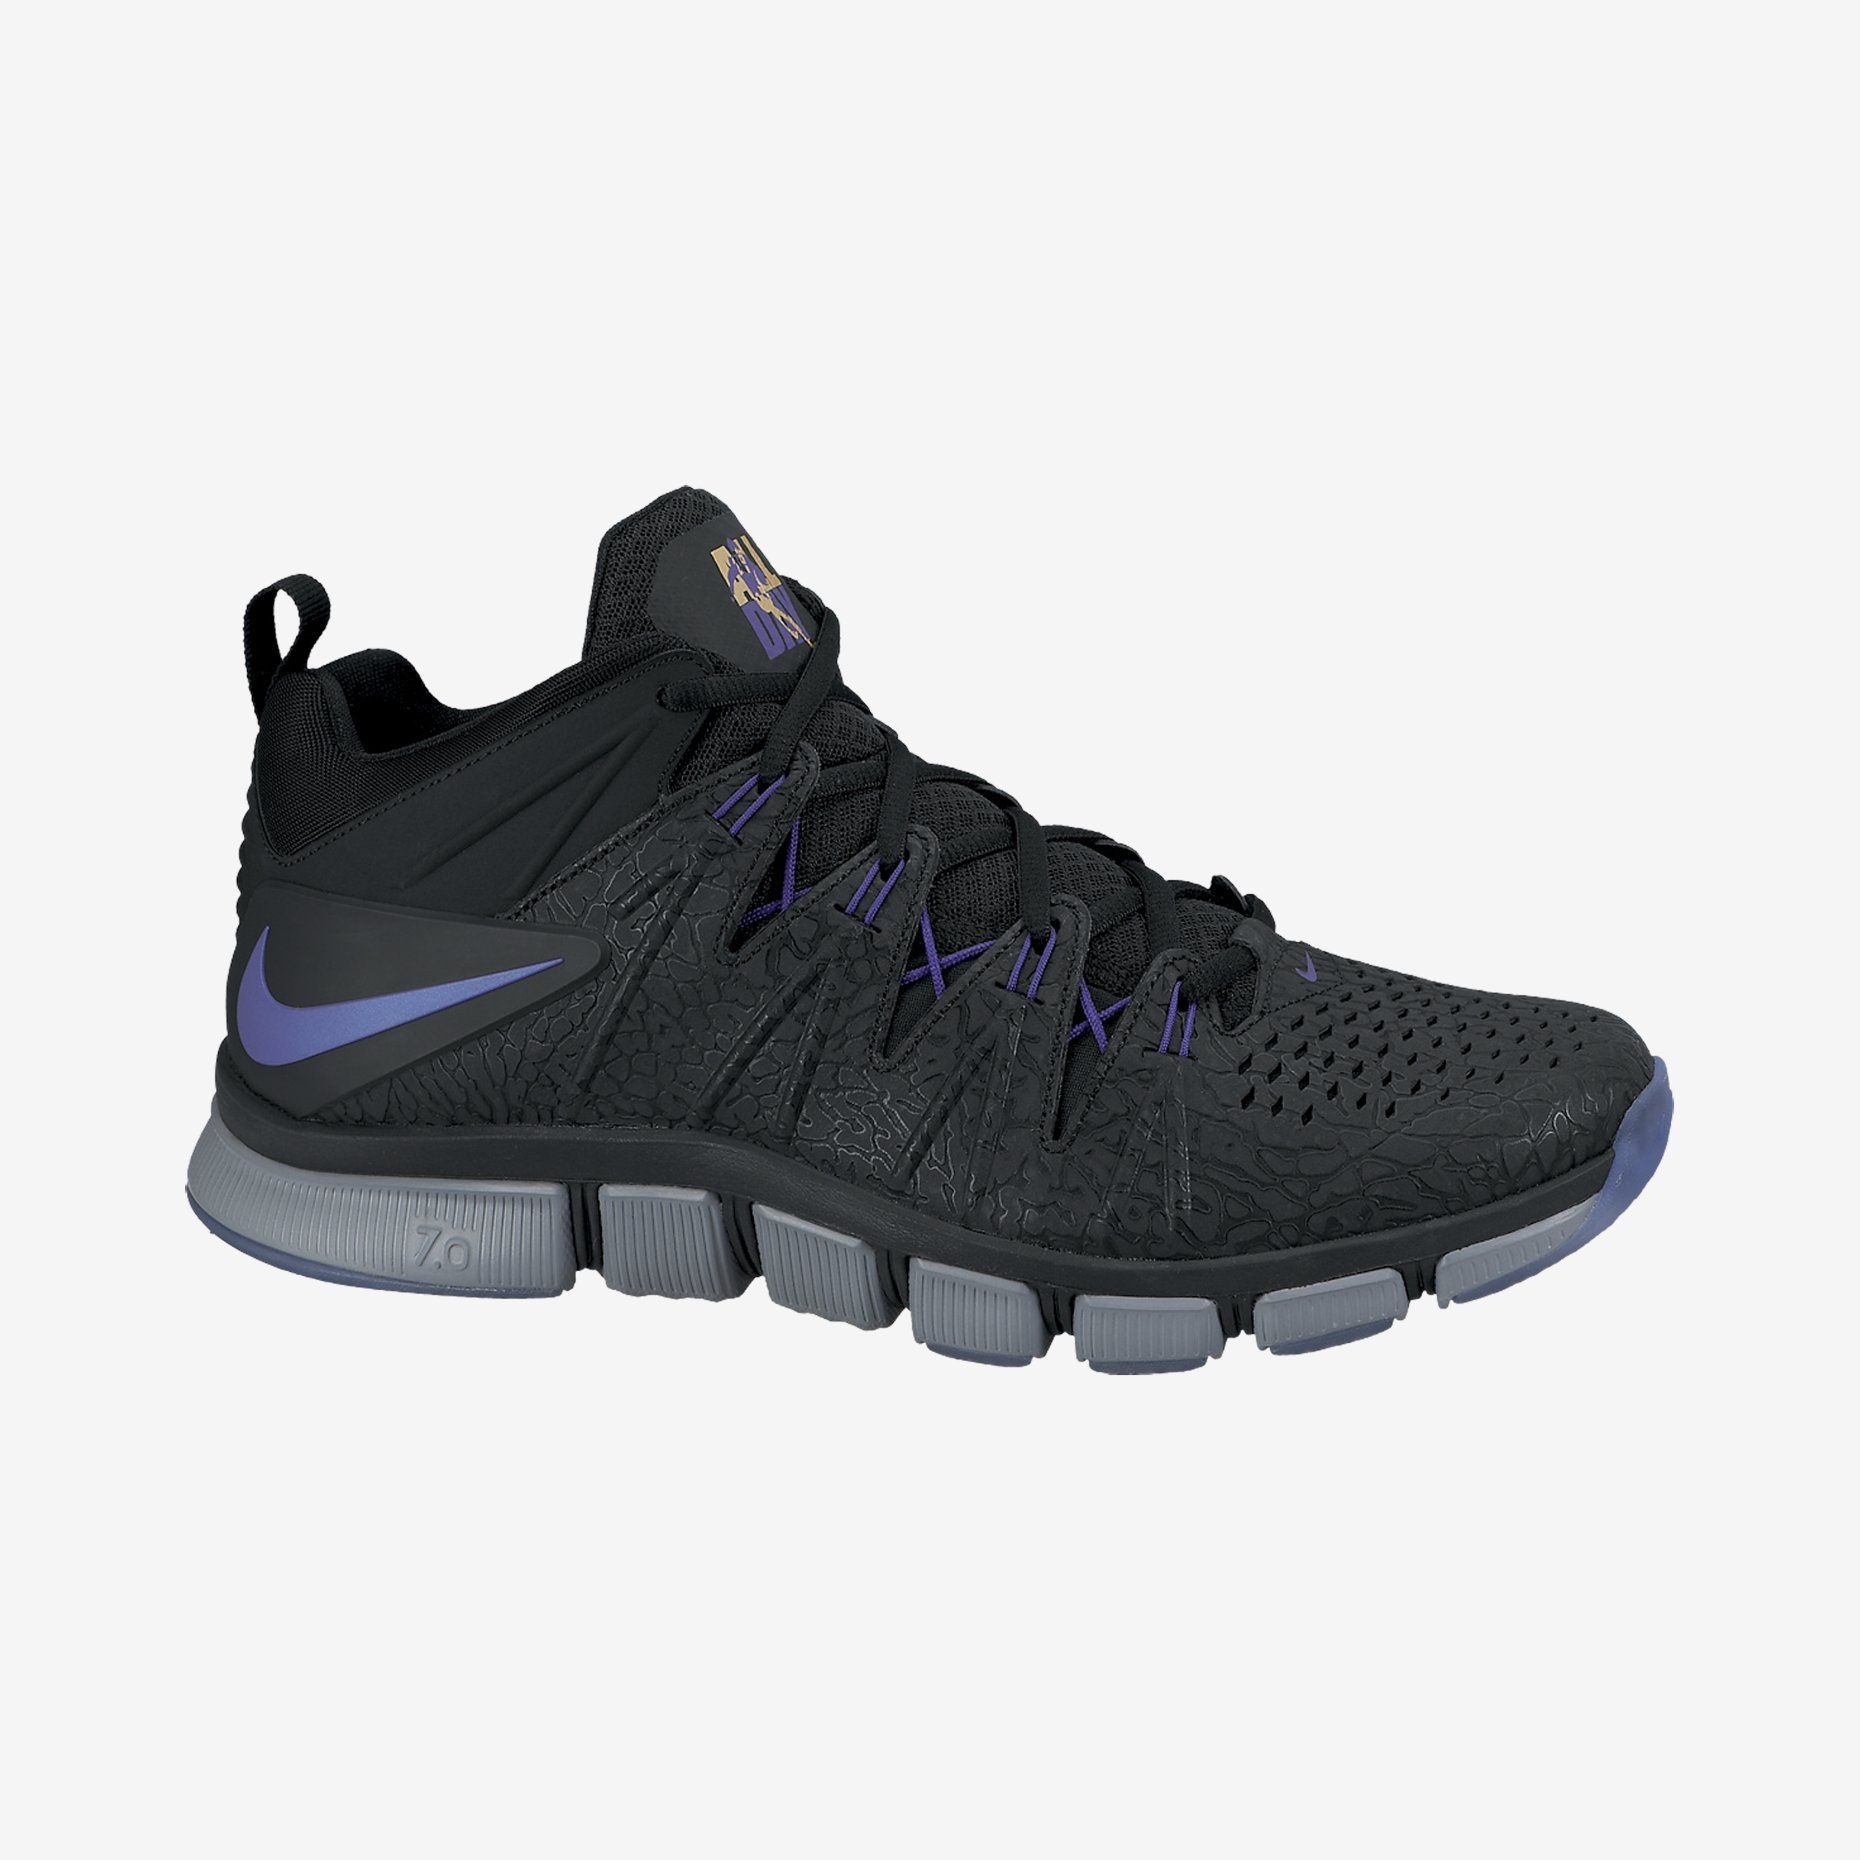 wholesale dealer 9c0bb 46220 Nike Store. Nike Free Trainer 7.0 (Adrian Peterson) Men's ...